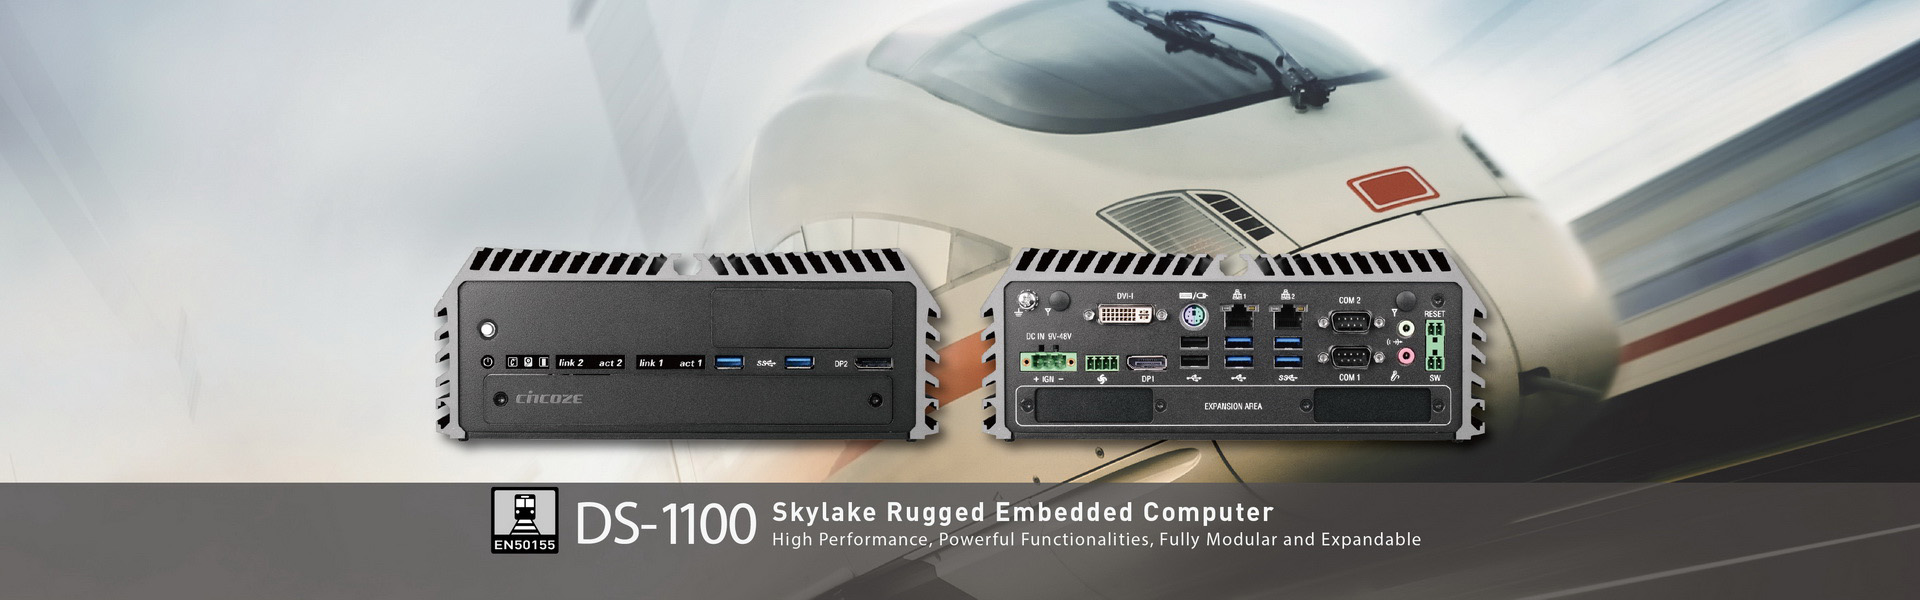 DS-1100: 6th Generation Intel® Core™ i3 / i5 / i7 (Skylake-S) High Performance, Modular and Expandable Rugged Embedded Computer